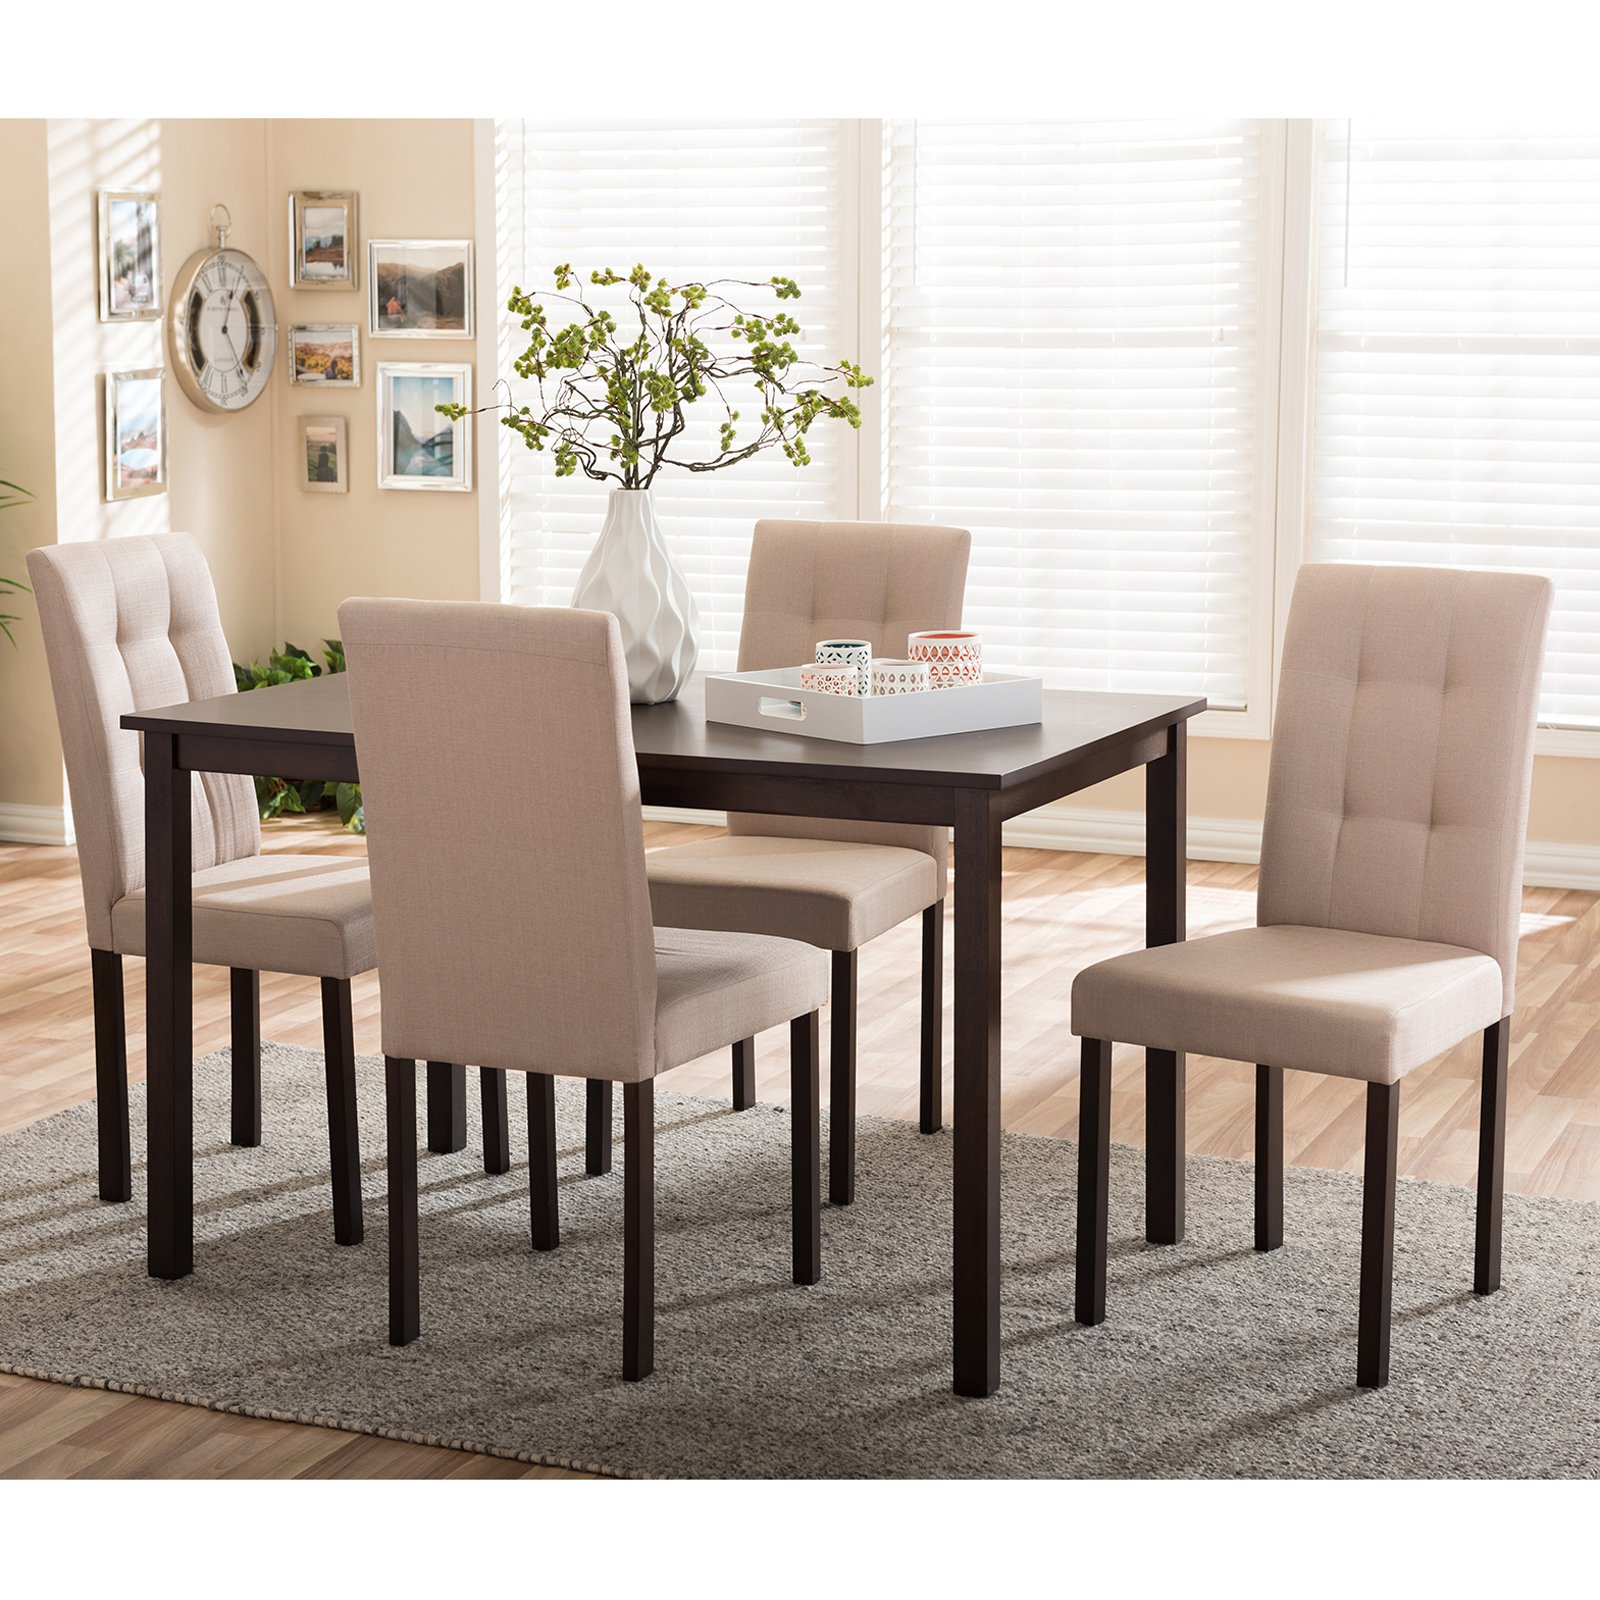 Baxton Studio Andrew Contemporary 5 Piece Upholstered Dining Set Multiple Colors Walmart Com Walmart Com